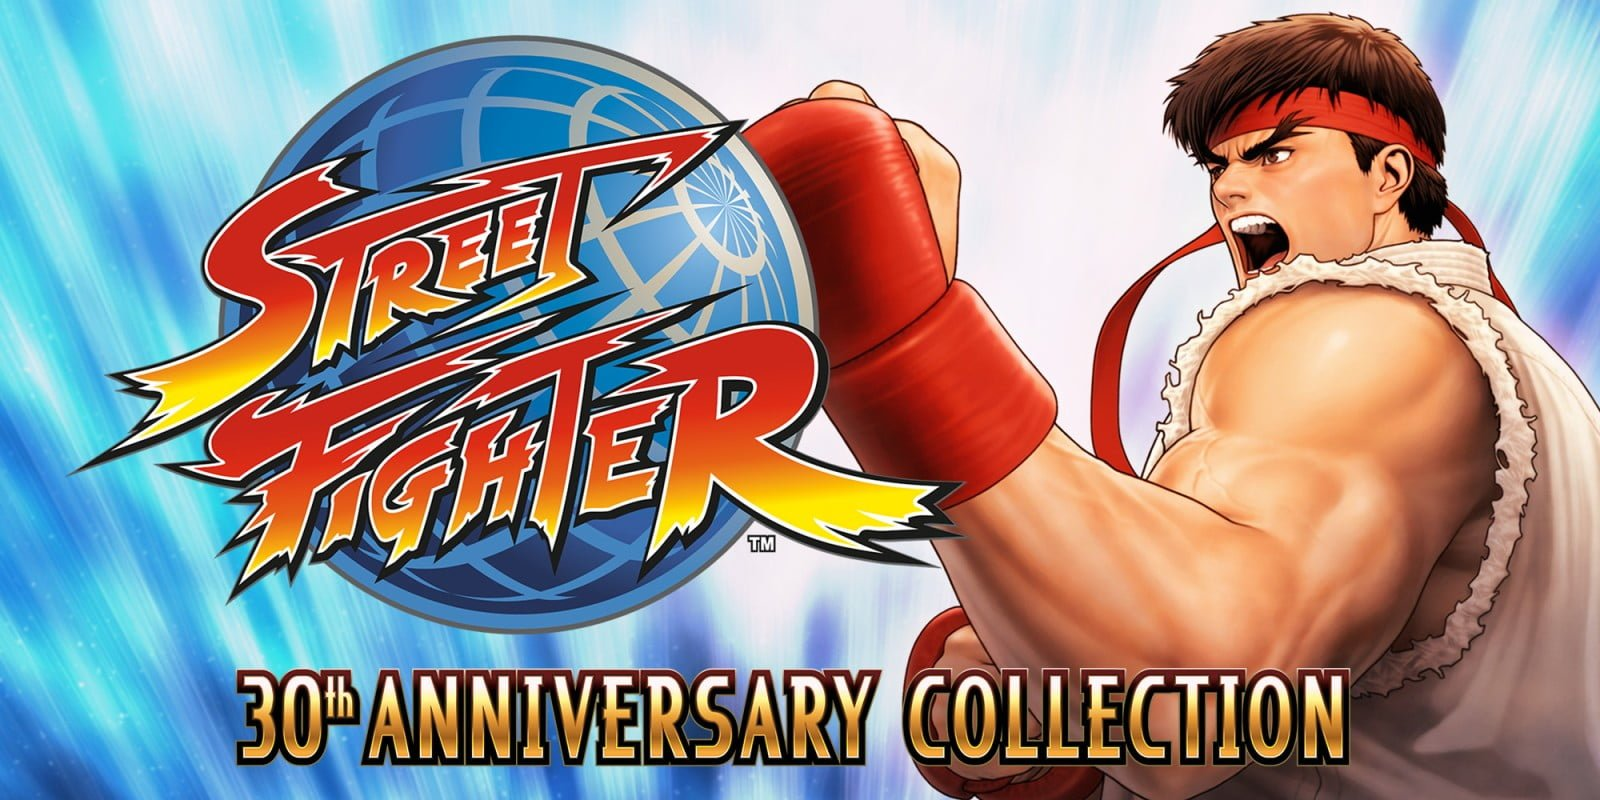 Street Fighter 30th Anniversary Collection Full Version Free